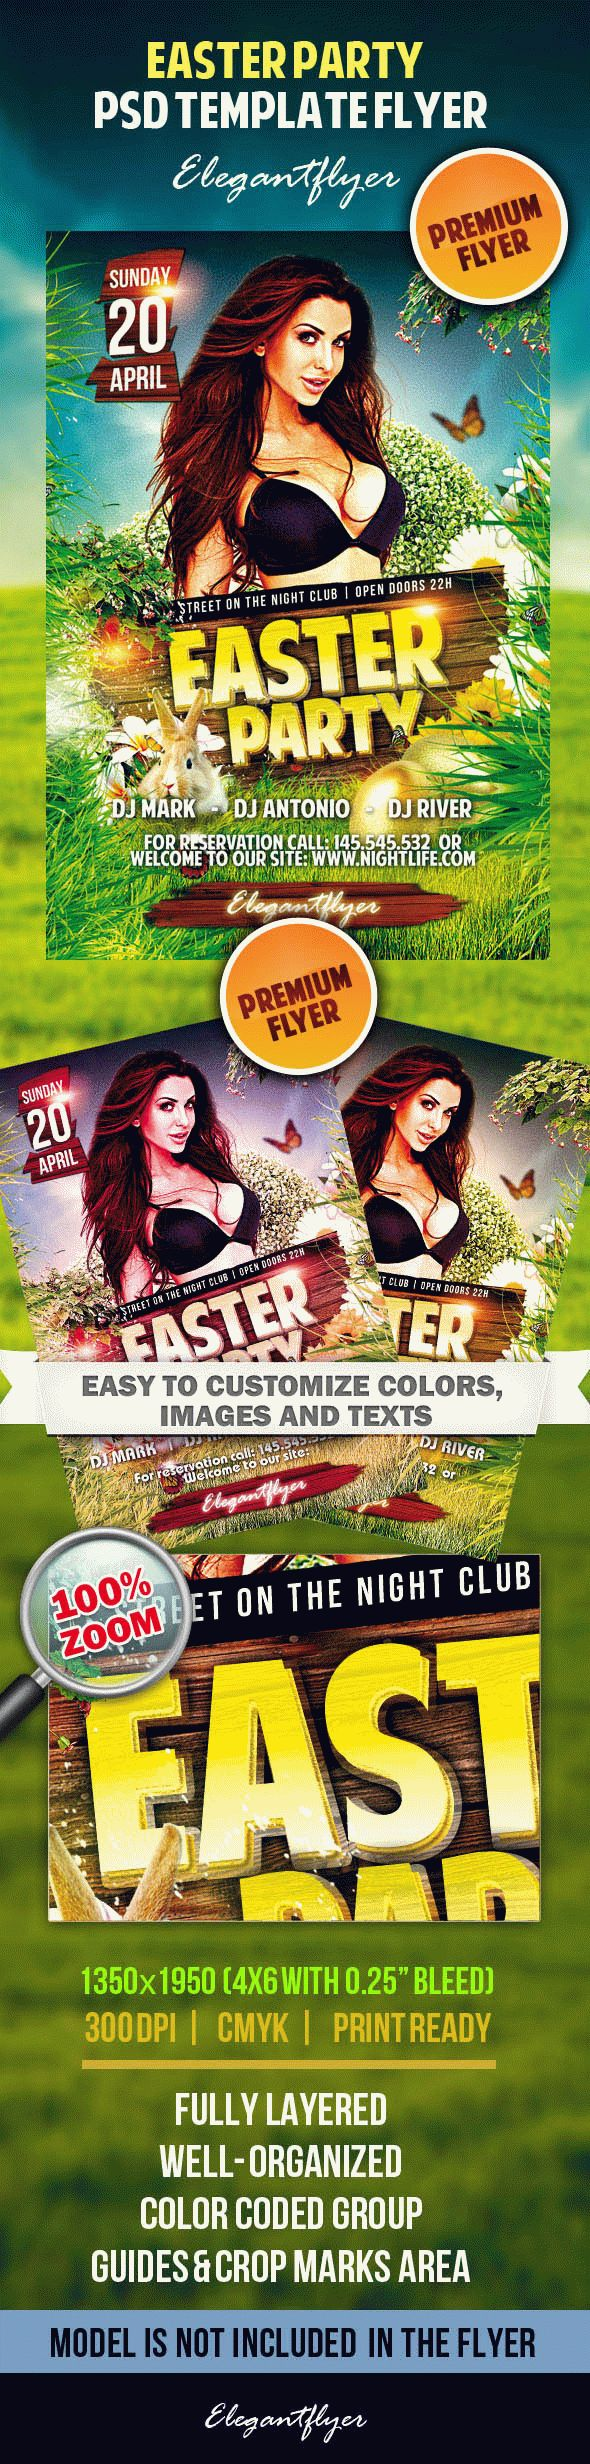 Easter Party – Premium Flyer PSD Tempate